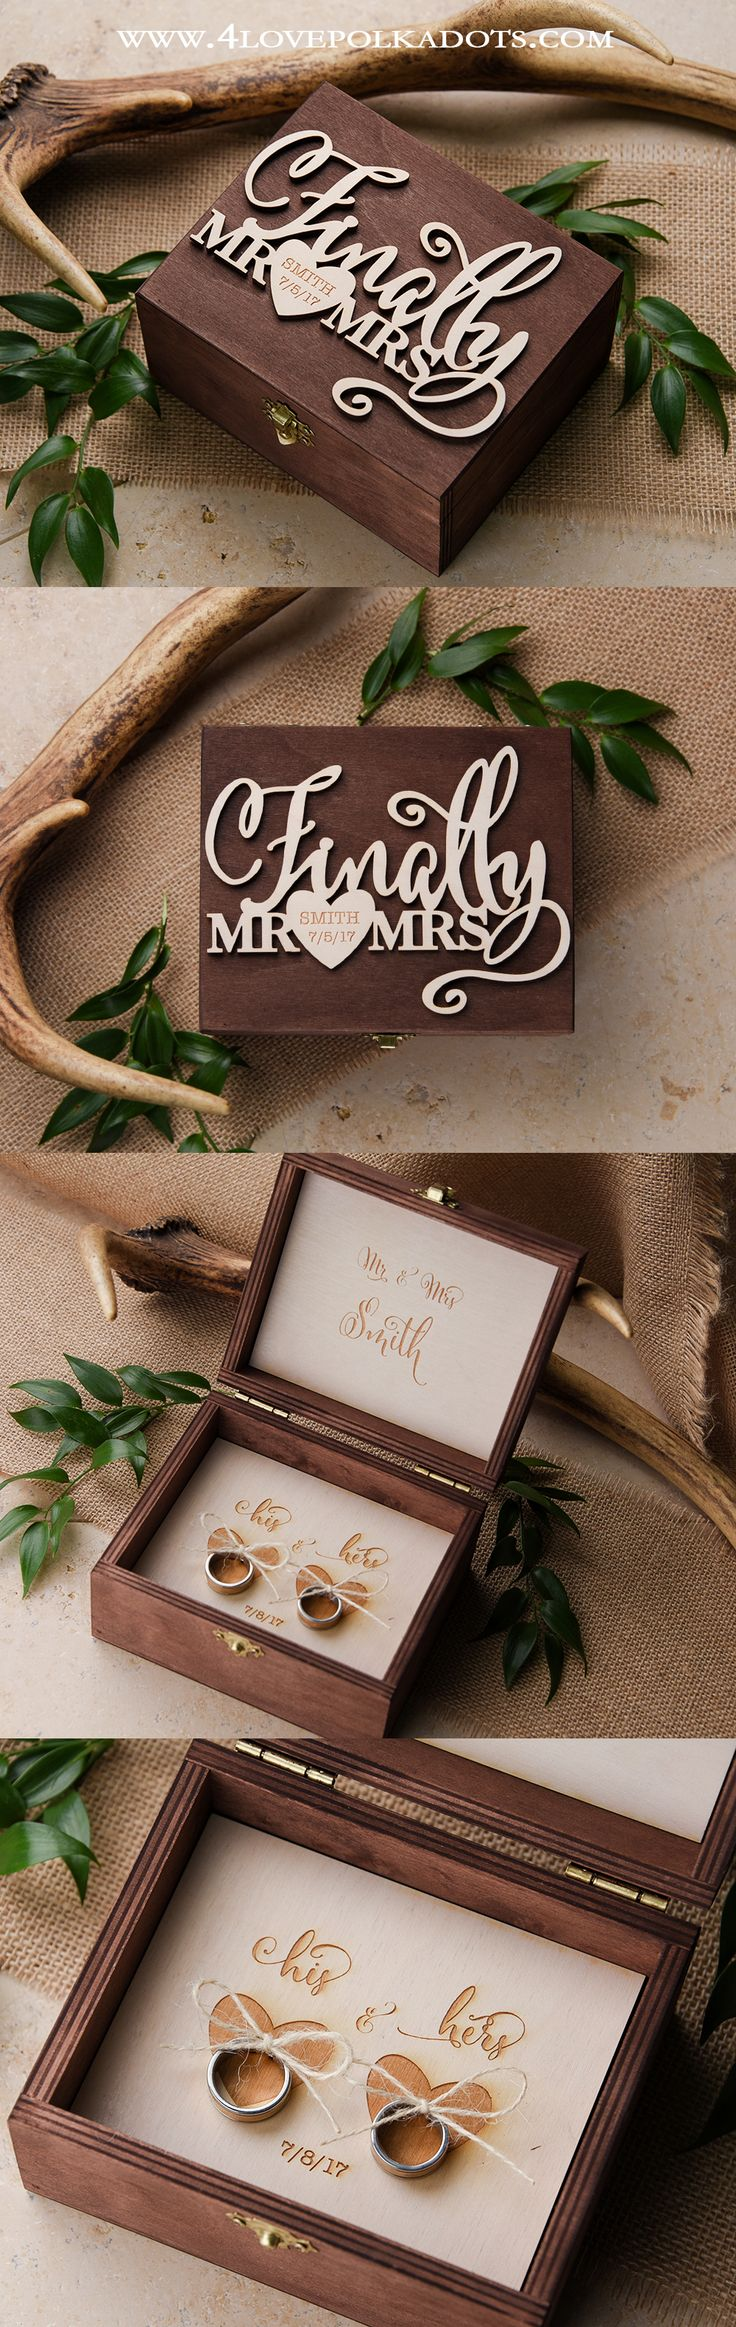 Wooden Ring Box Finally Mr & Mrs #weddingideas